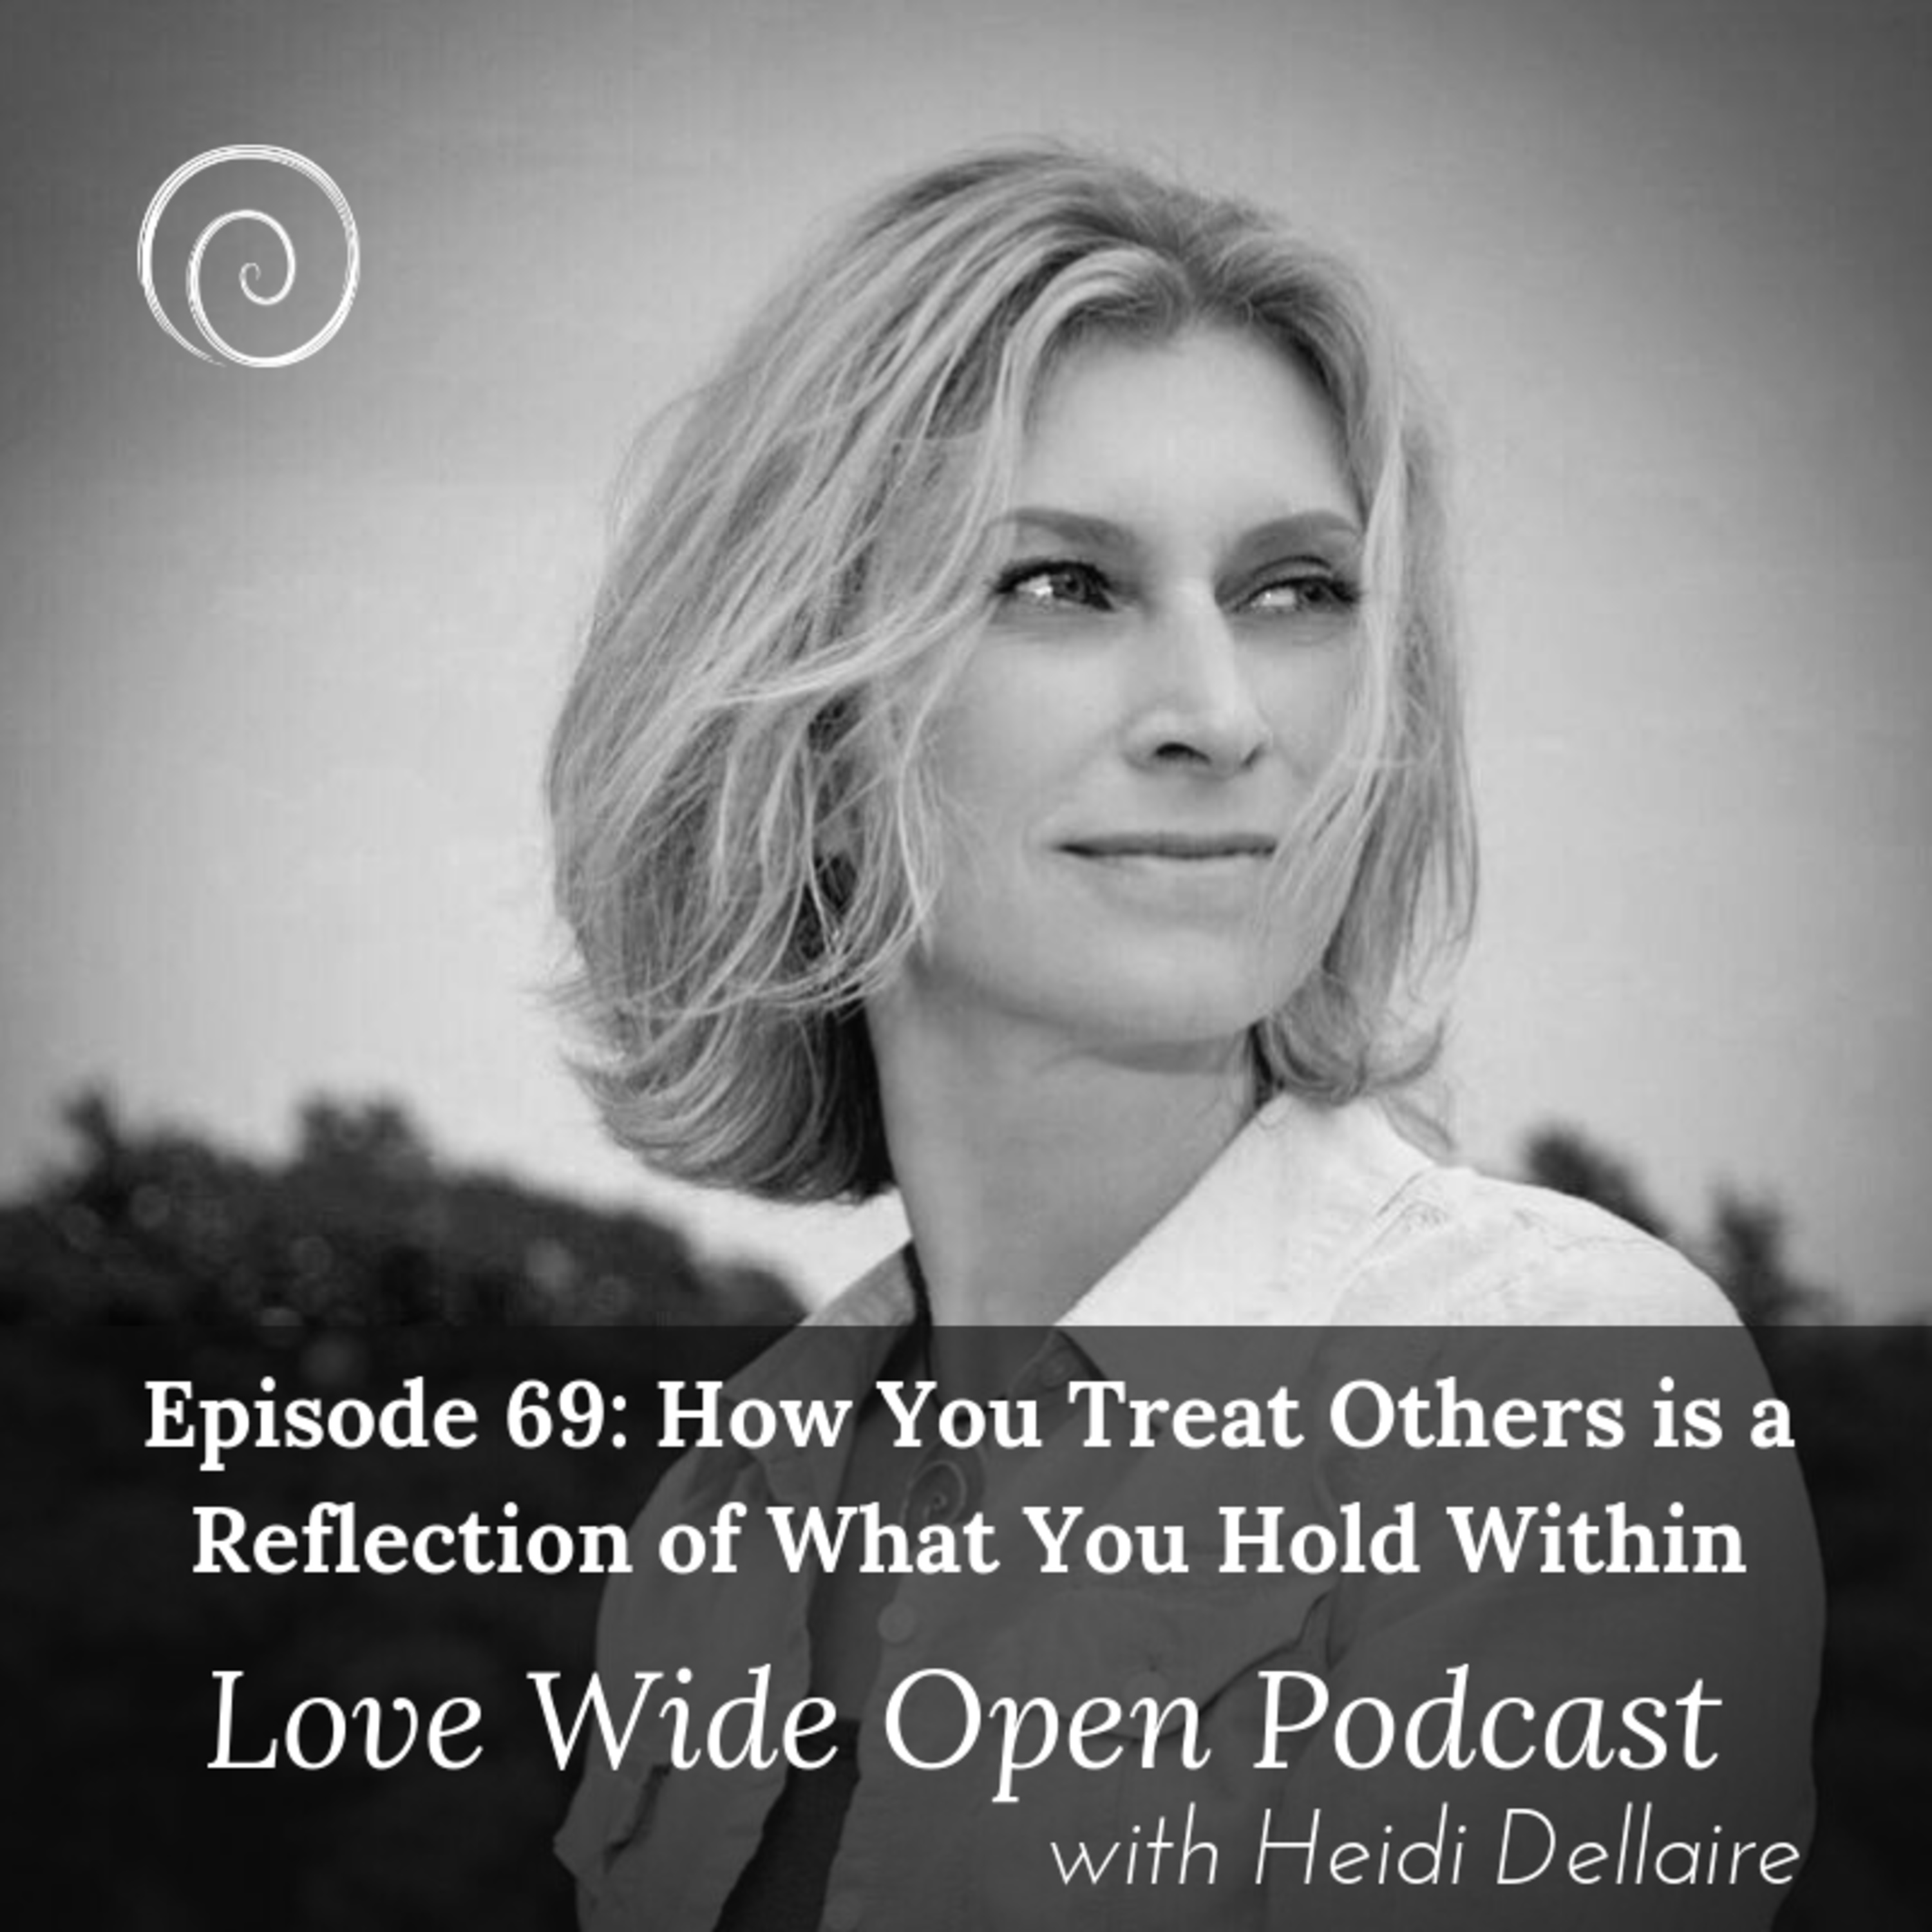 Ep 69 How You Treat Others is a Reflection of What You Hold Within